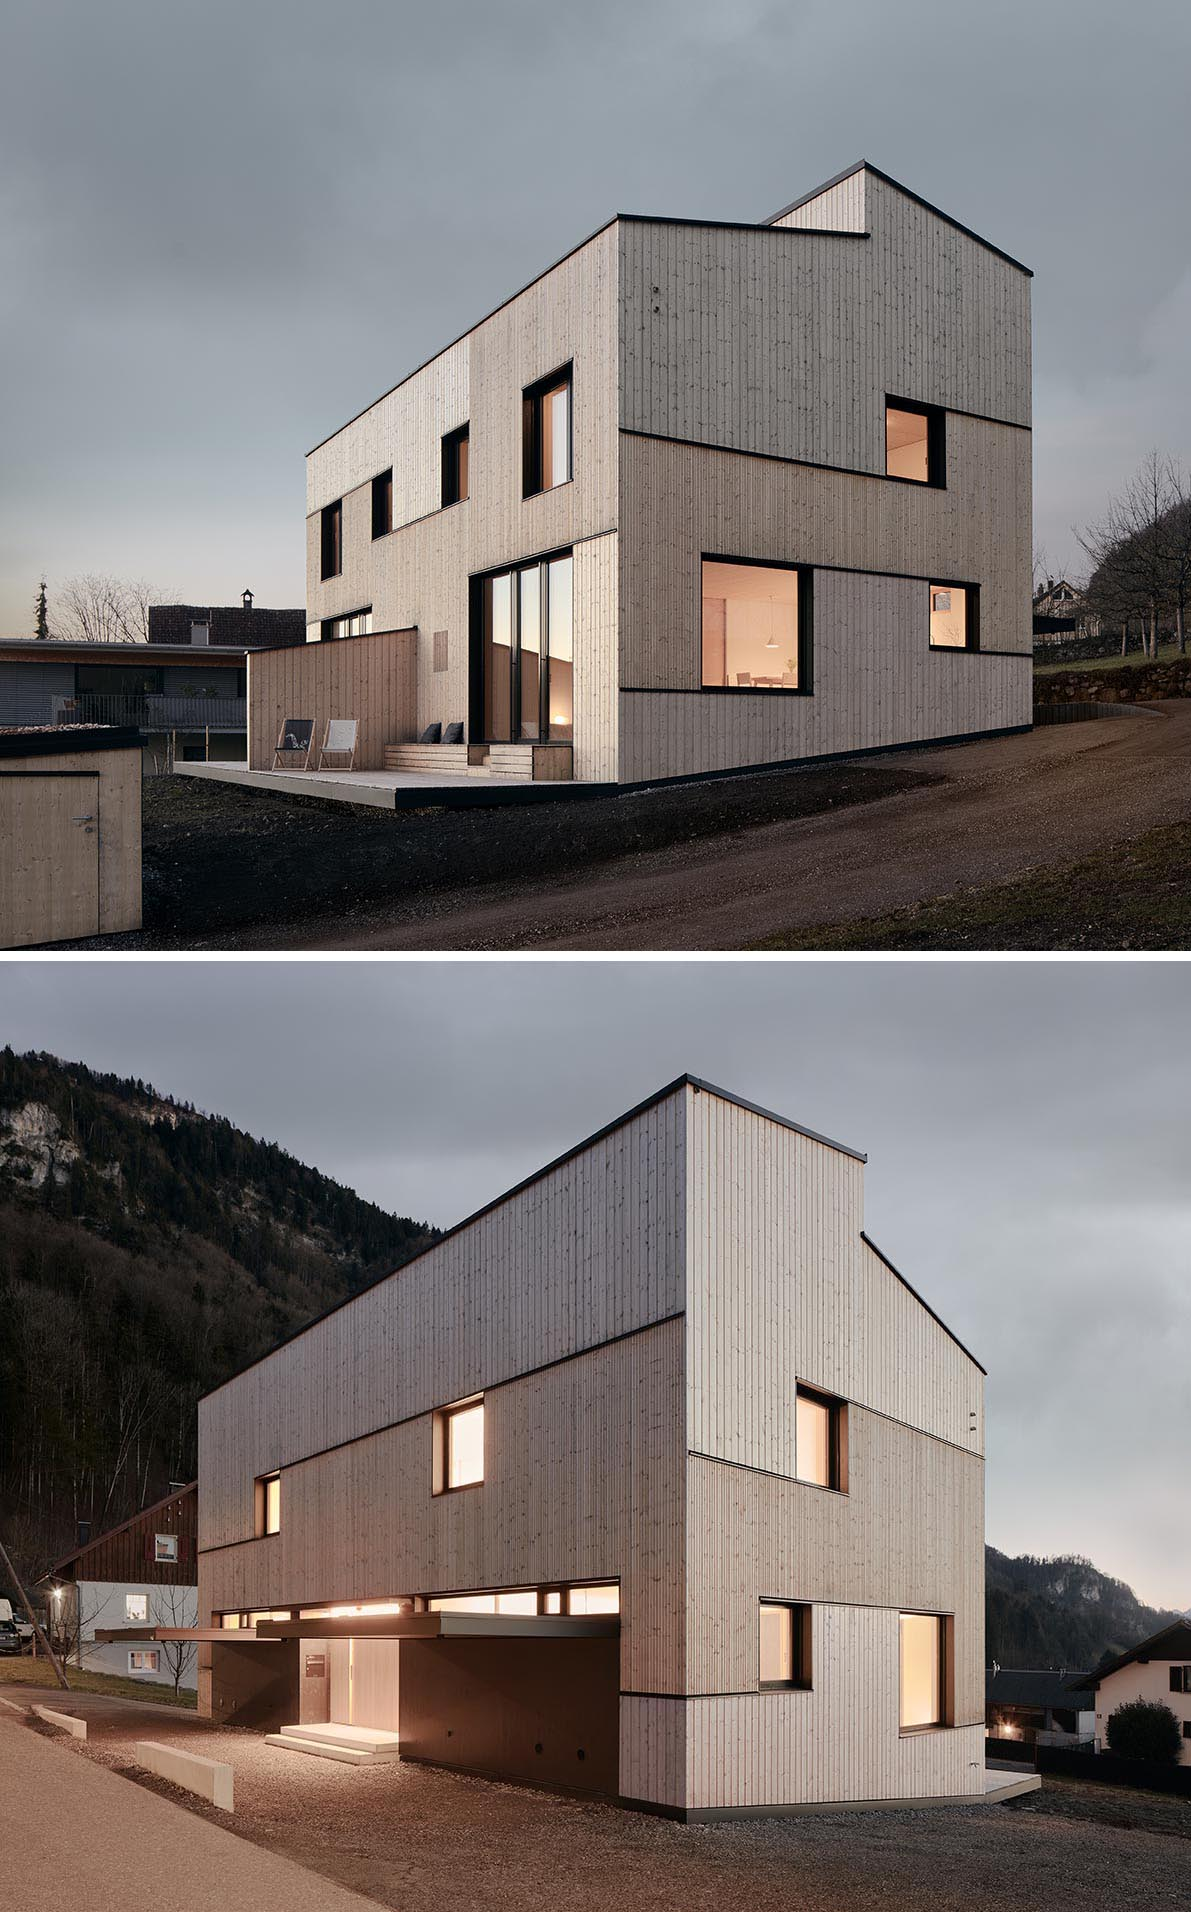 A modern duplex with different sizes of natural wood siding and black accents.